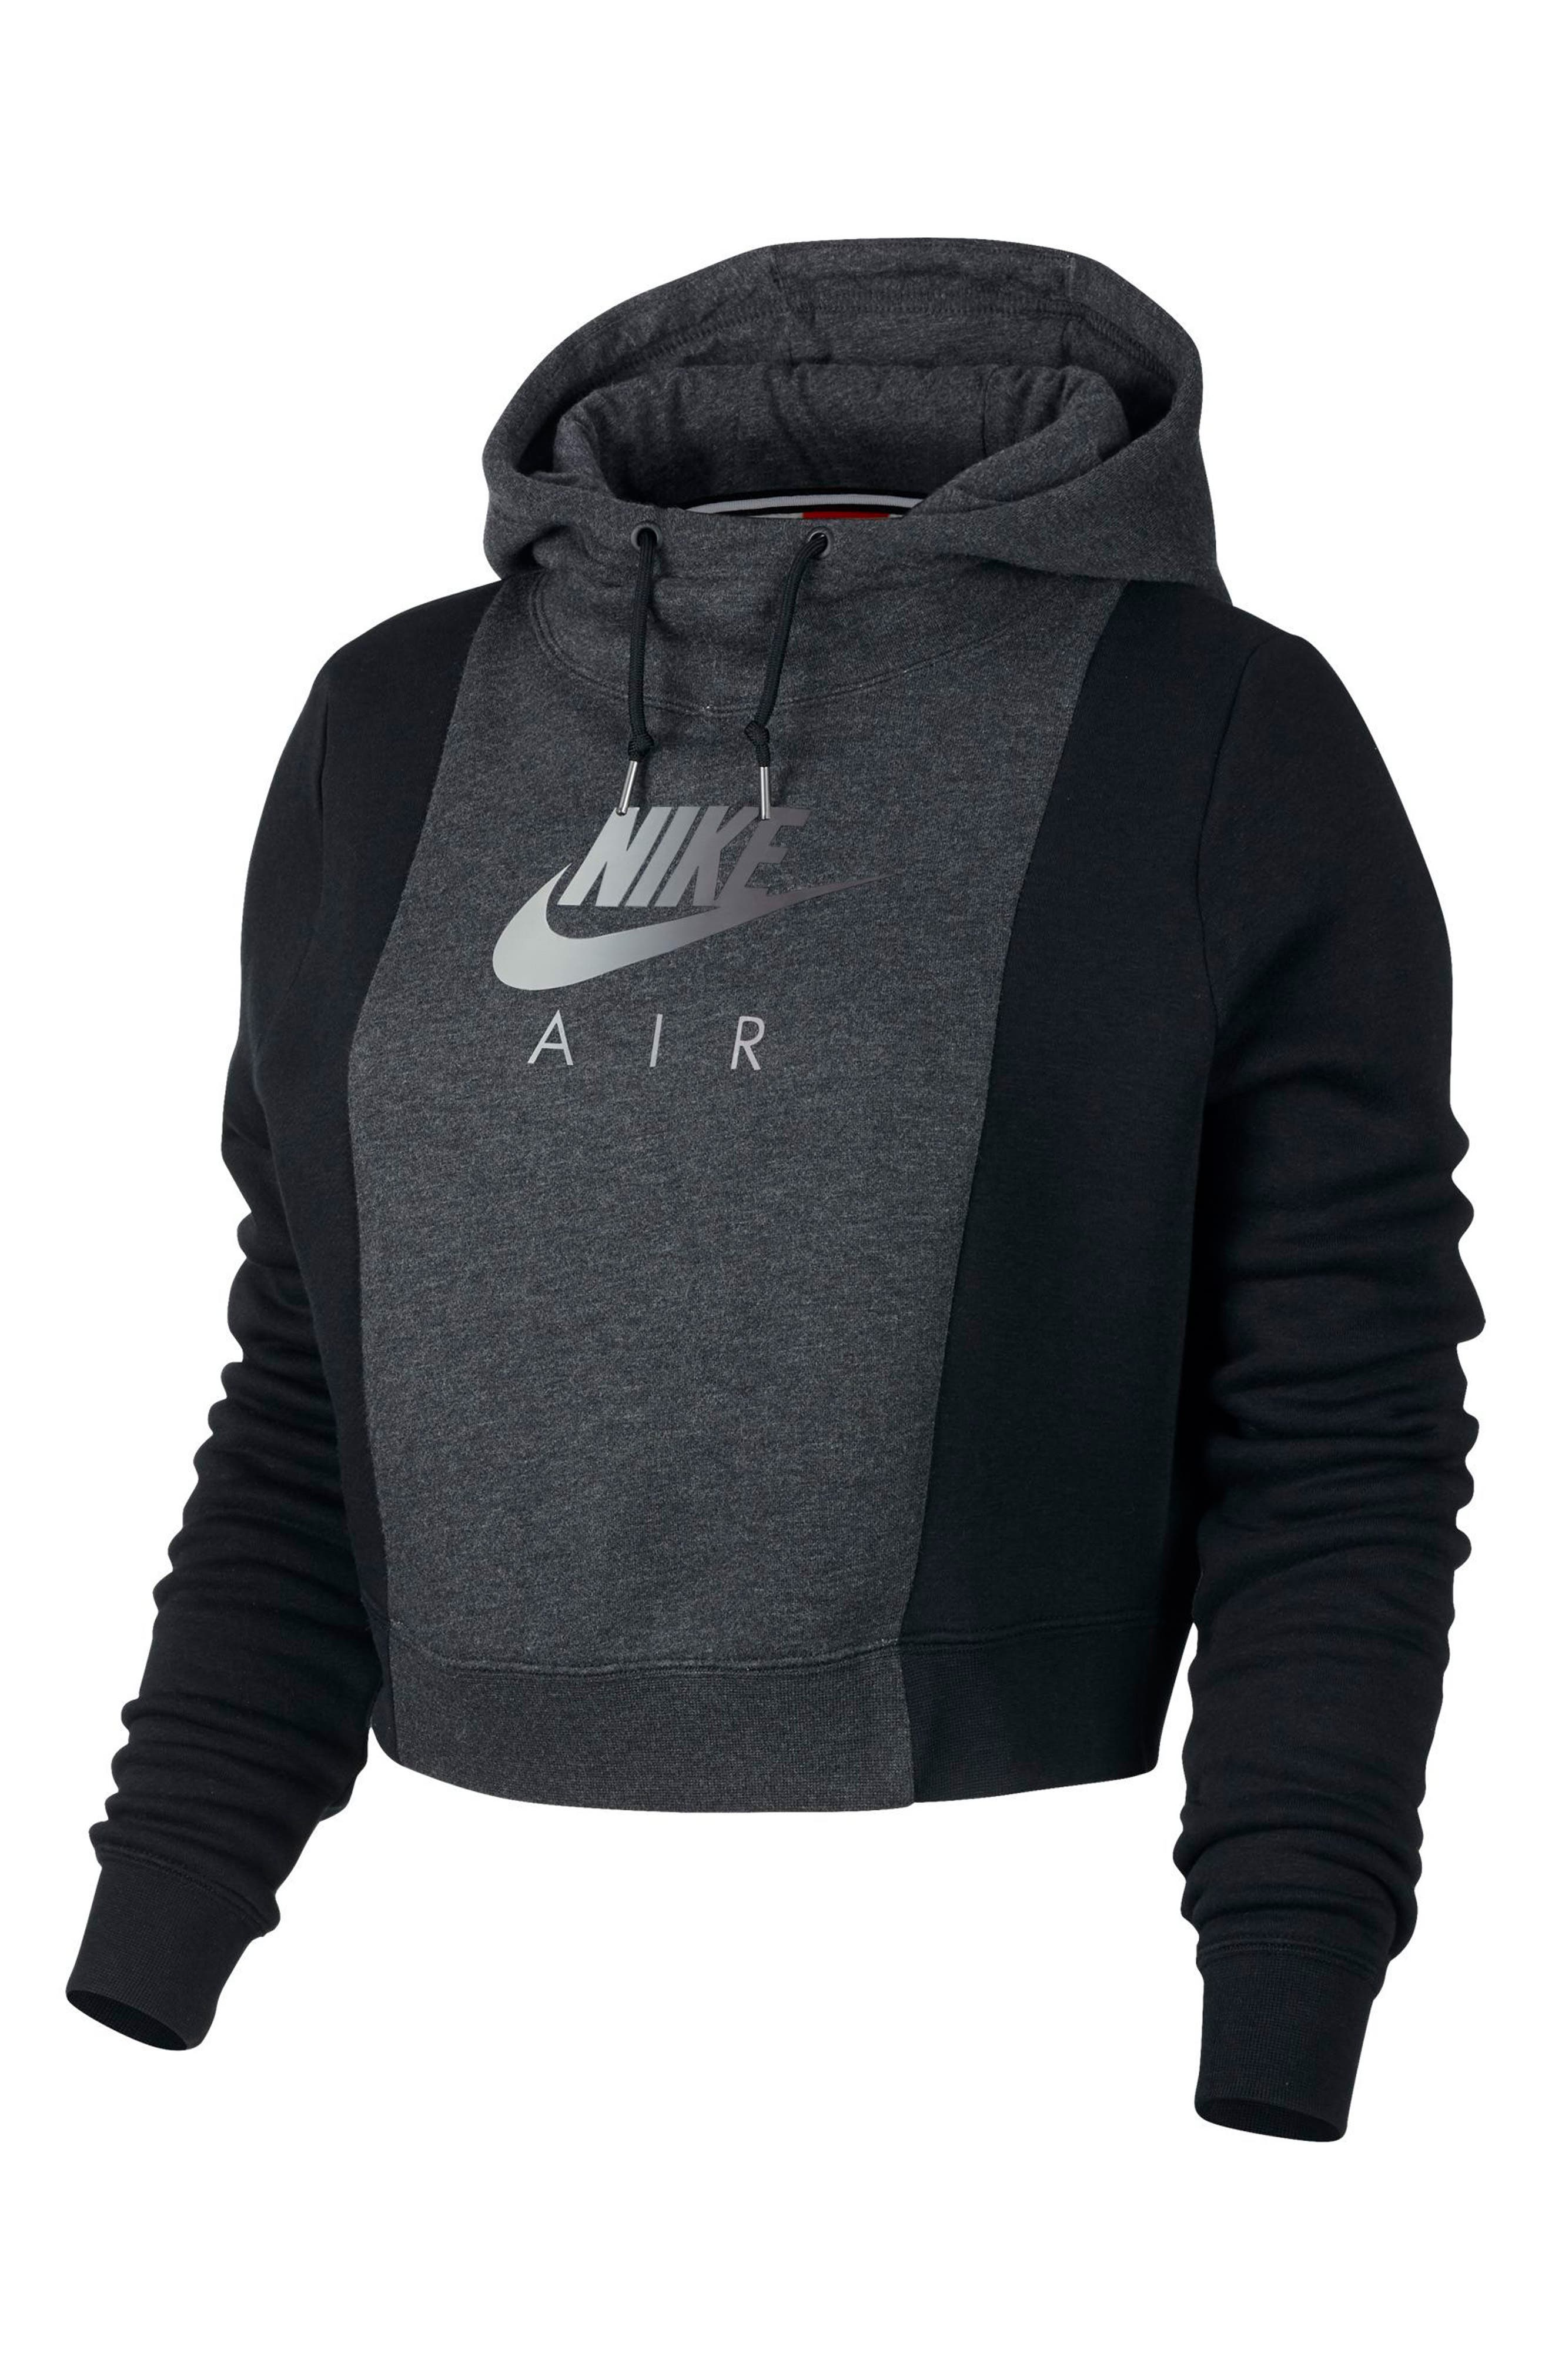 NSW Rally Air Women's Crop Pullover Hoodie,                             Main thumbnail 1, color,                             009